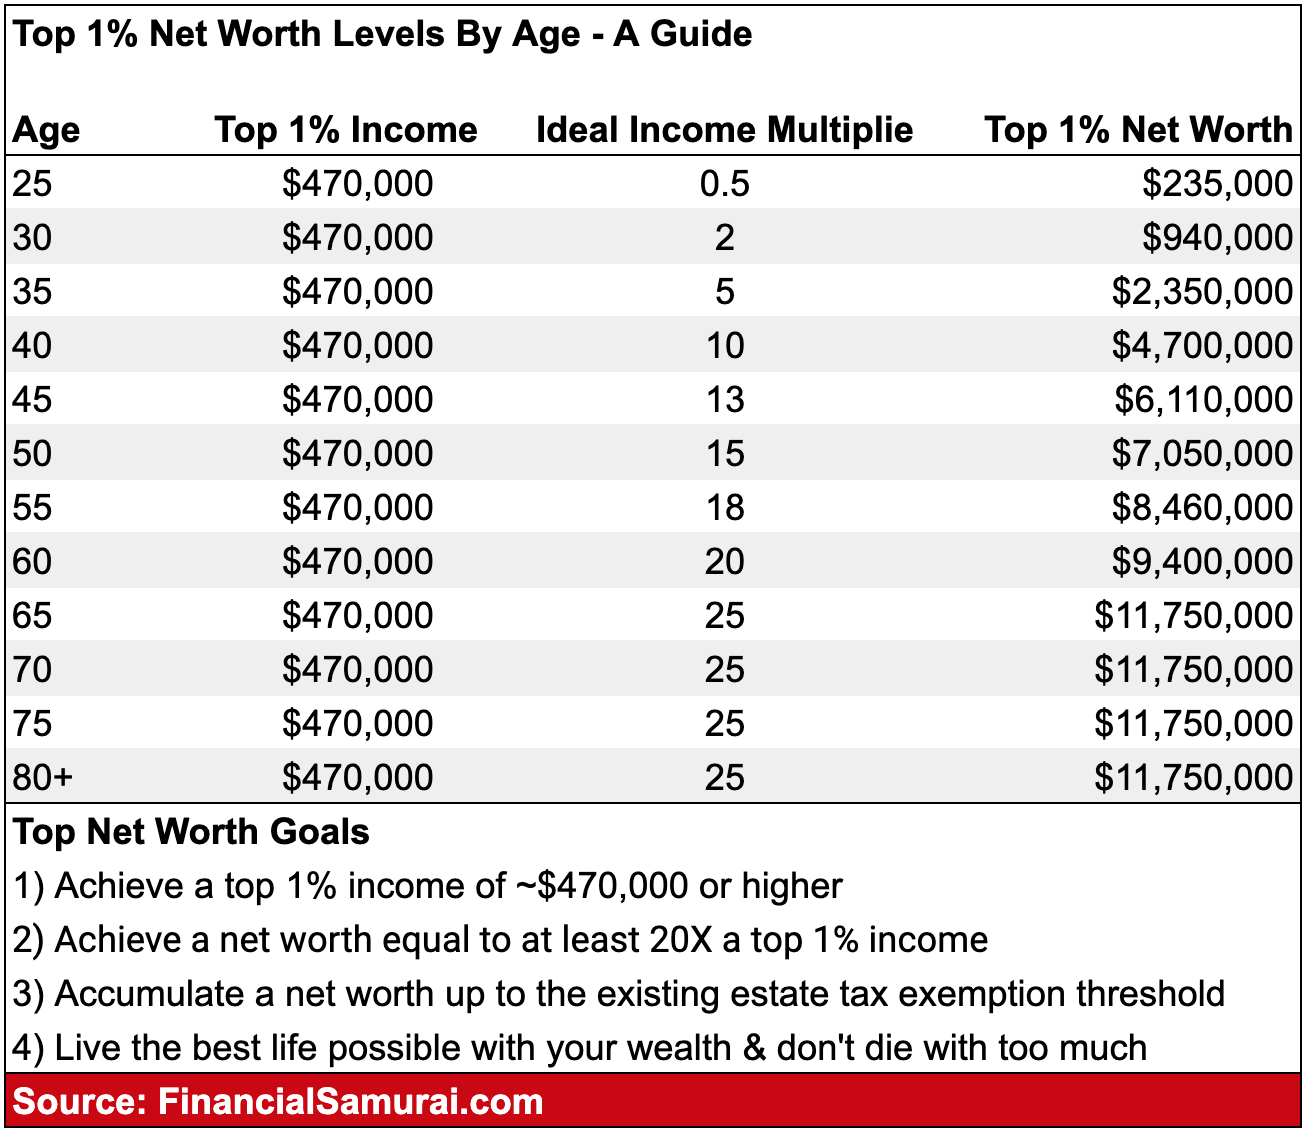 Top one percent net worth levels by age guide by Financial Samurai